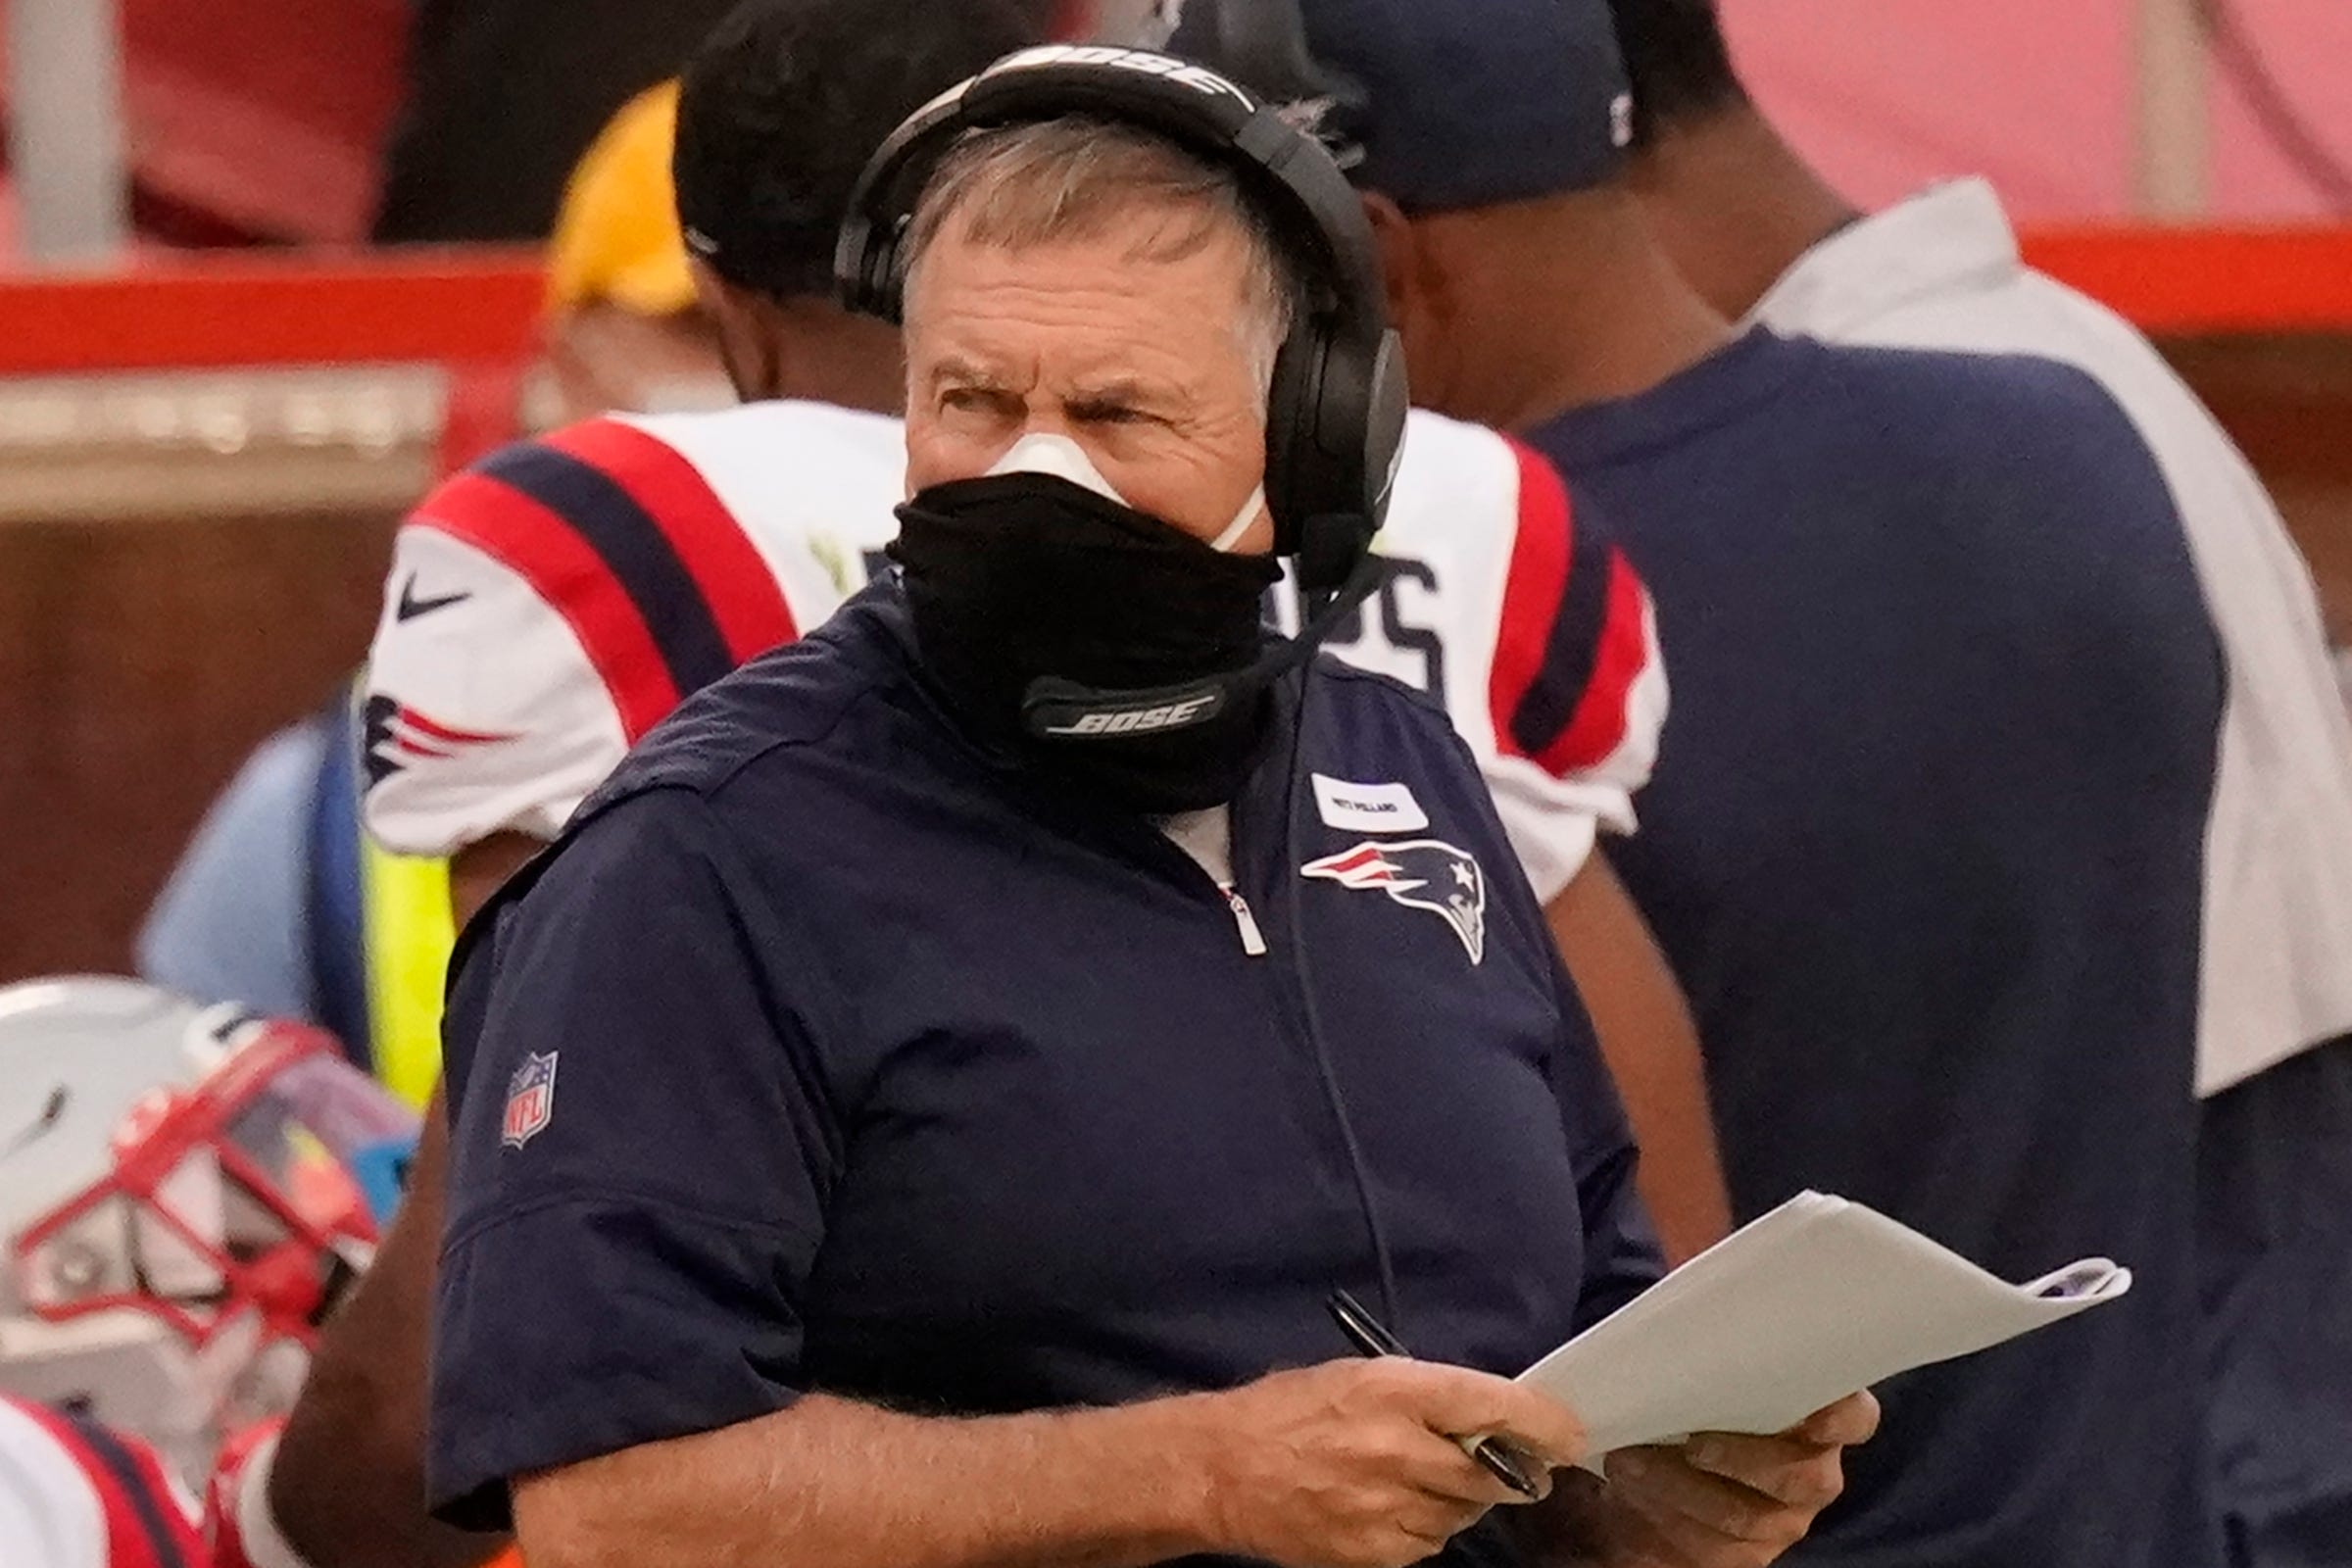 Bill Belichick: Patriots' top priority is players' health, safety